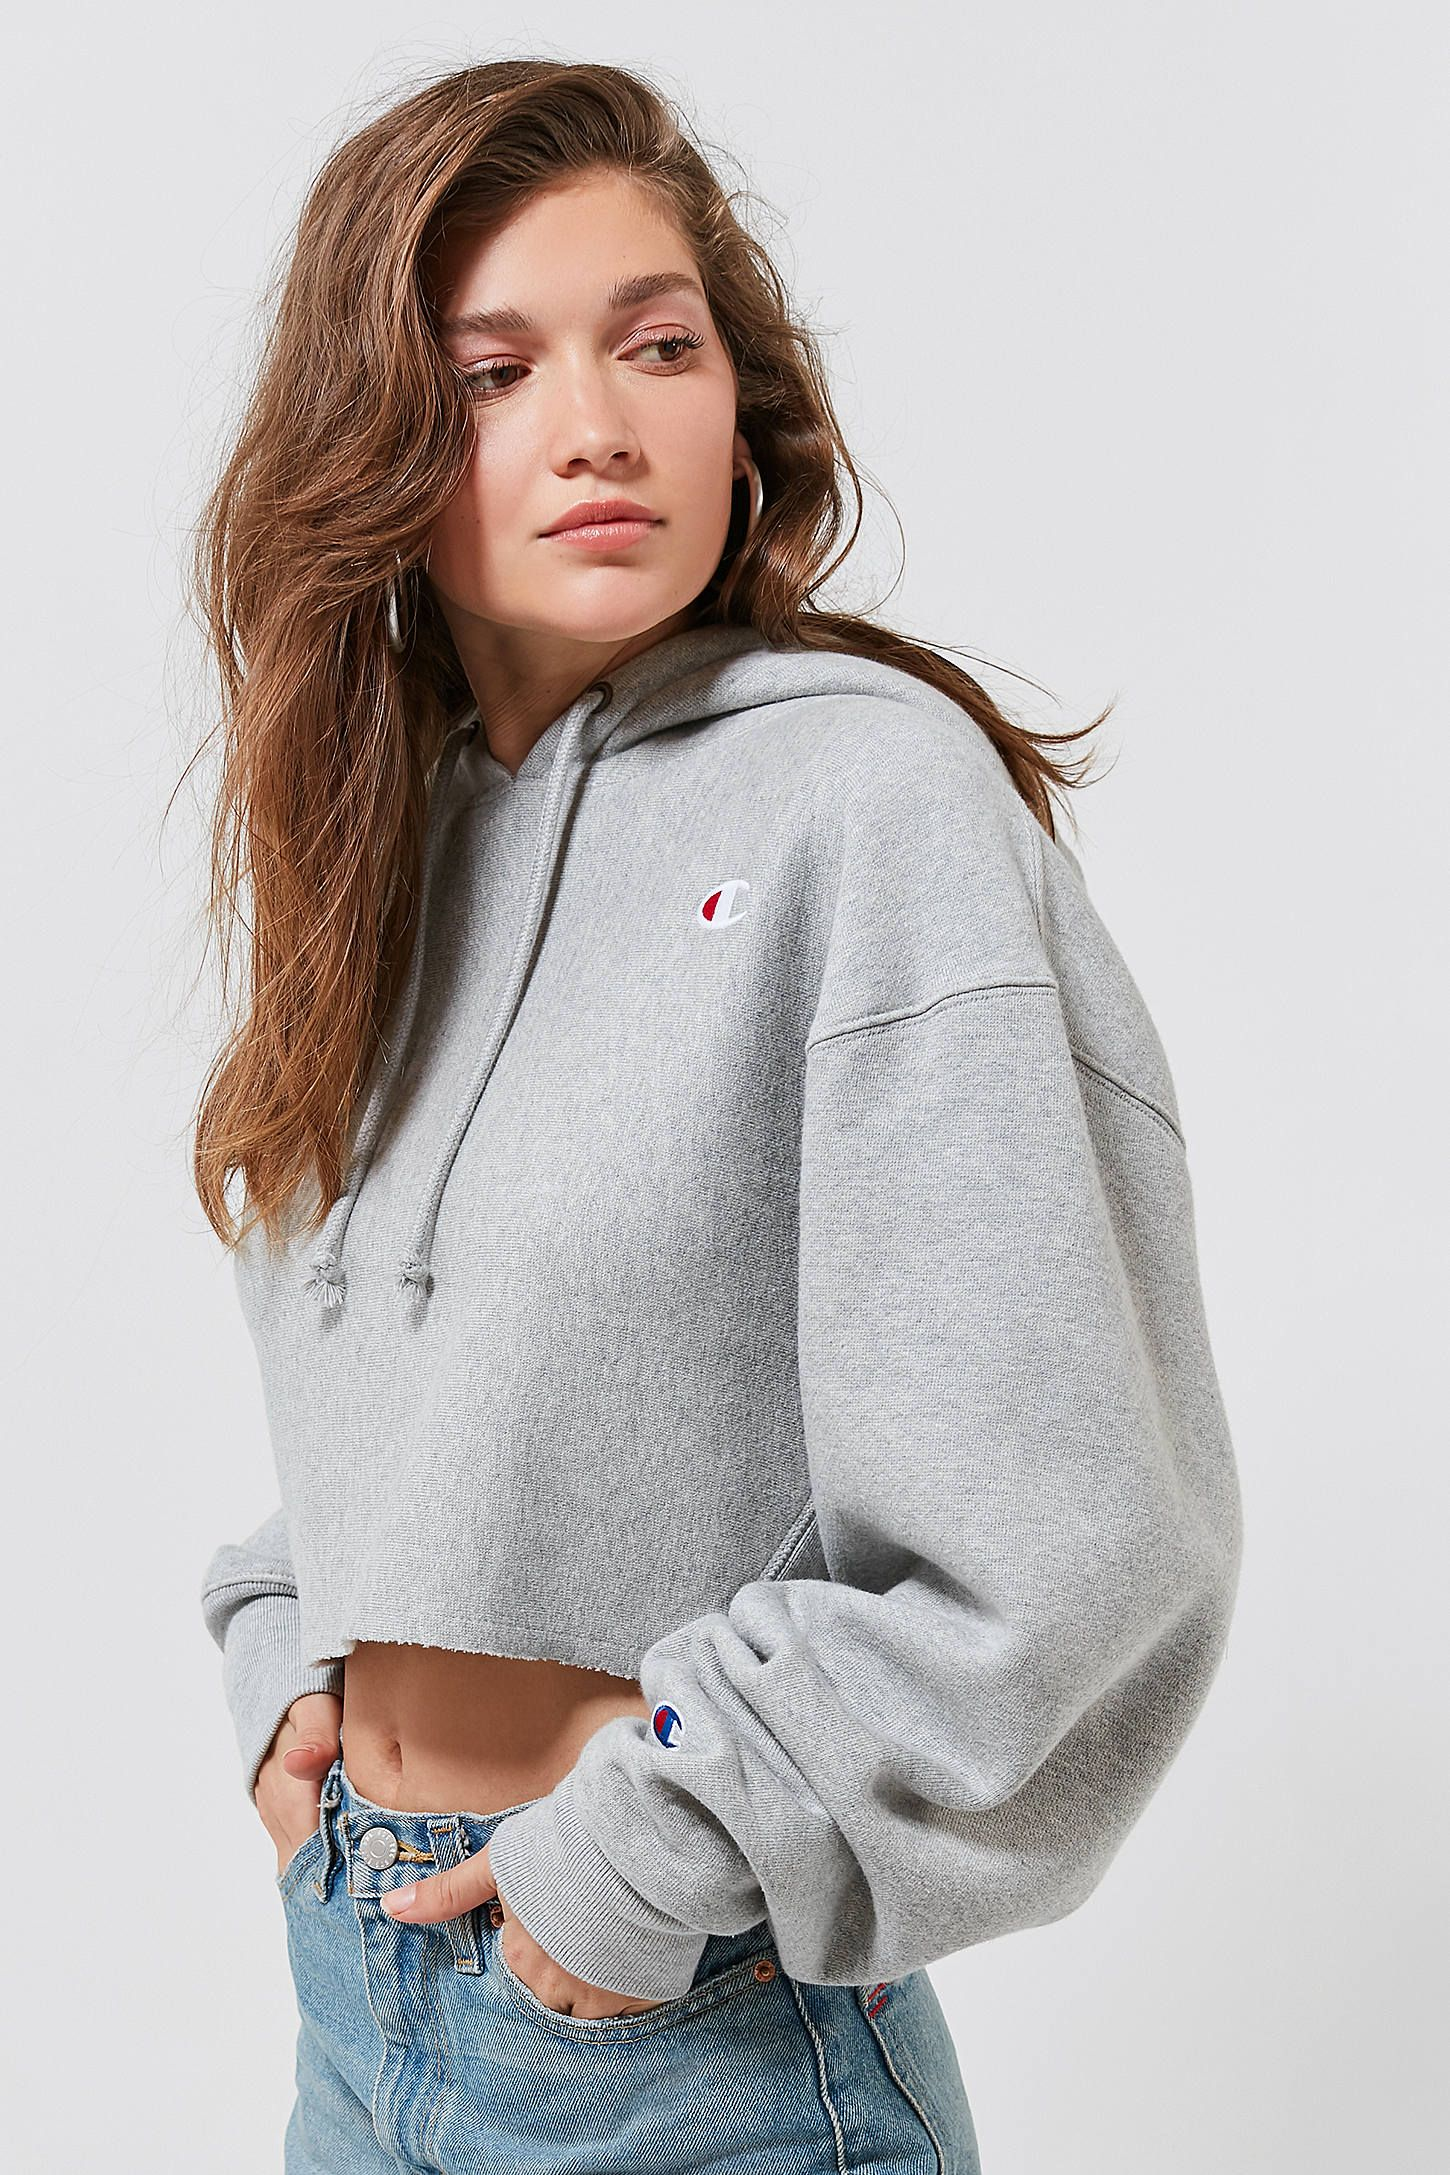 6a9c8aea050 Champion UO Exclusive Cropped Hoodie Sweatshirt in 2019 | Outfit ...